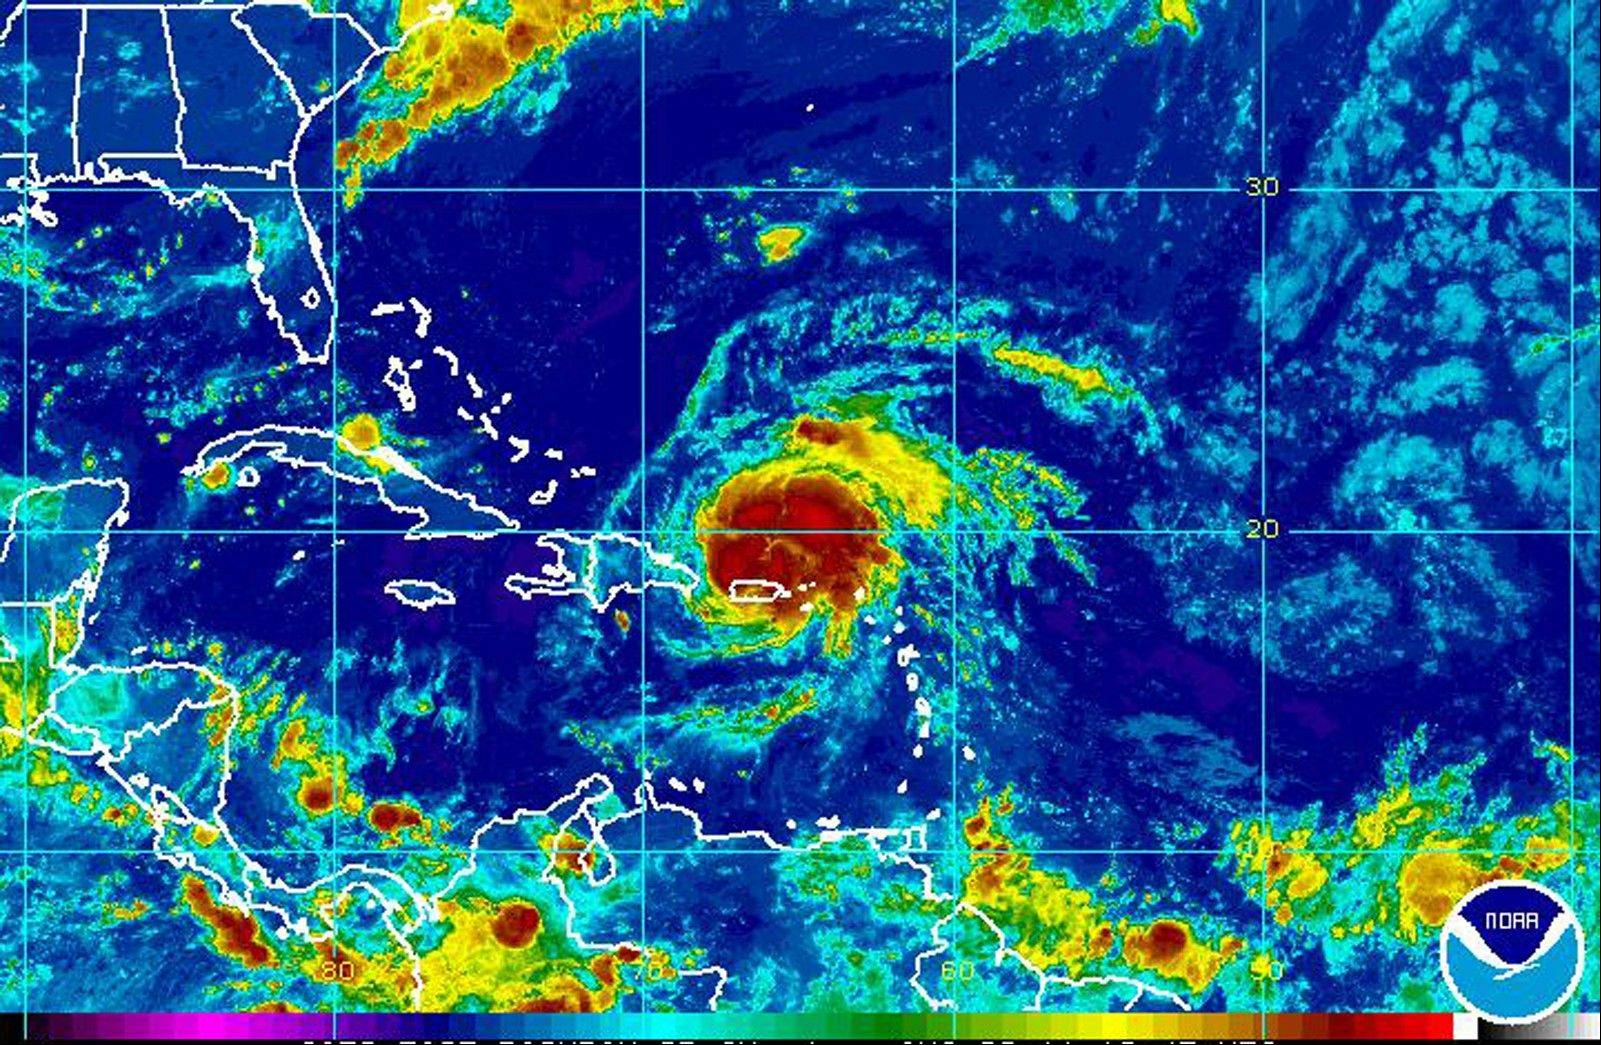 This image shows hurricane Irene, center right, approximately 55 miles West Northwest of San Juan Puerto Rico. According to the National Hurricane Center, Irene has maximum sustained winds of 75 MPH and is moving west northwest at 14 MPH.